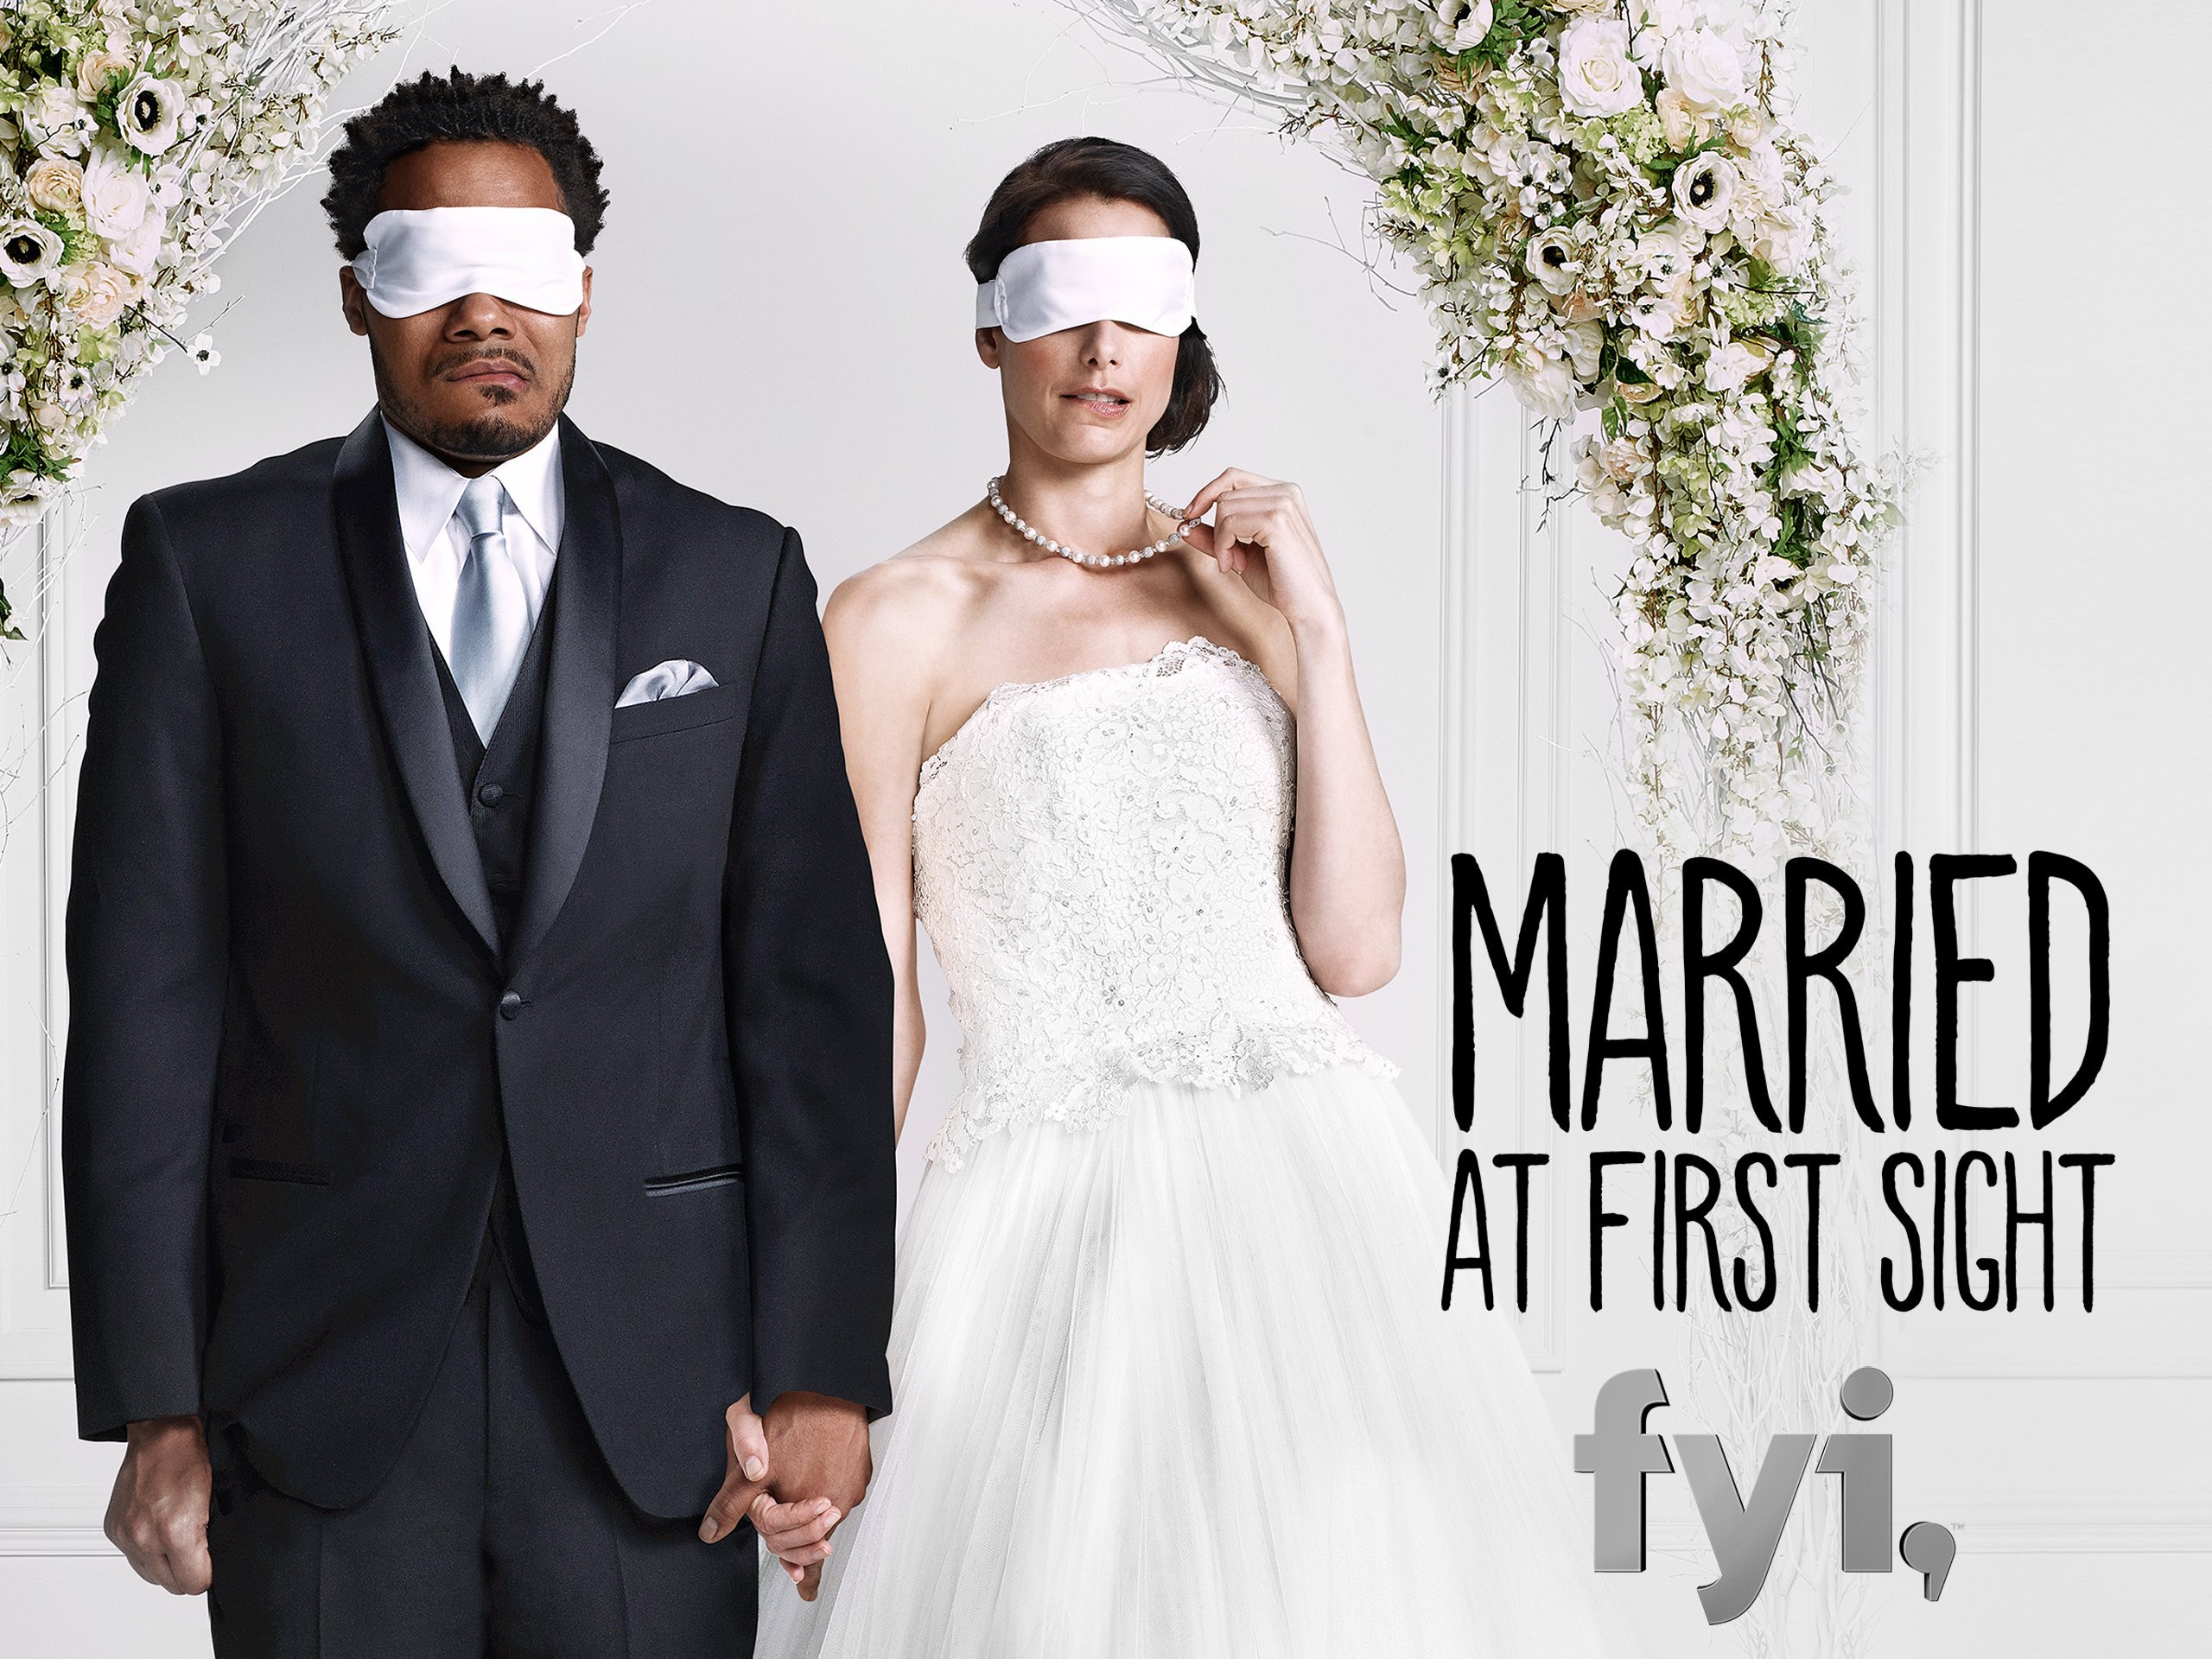 Amazon.com: Married at First Sight Season 1: Amazon Digital Services LLC